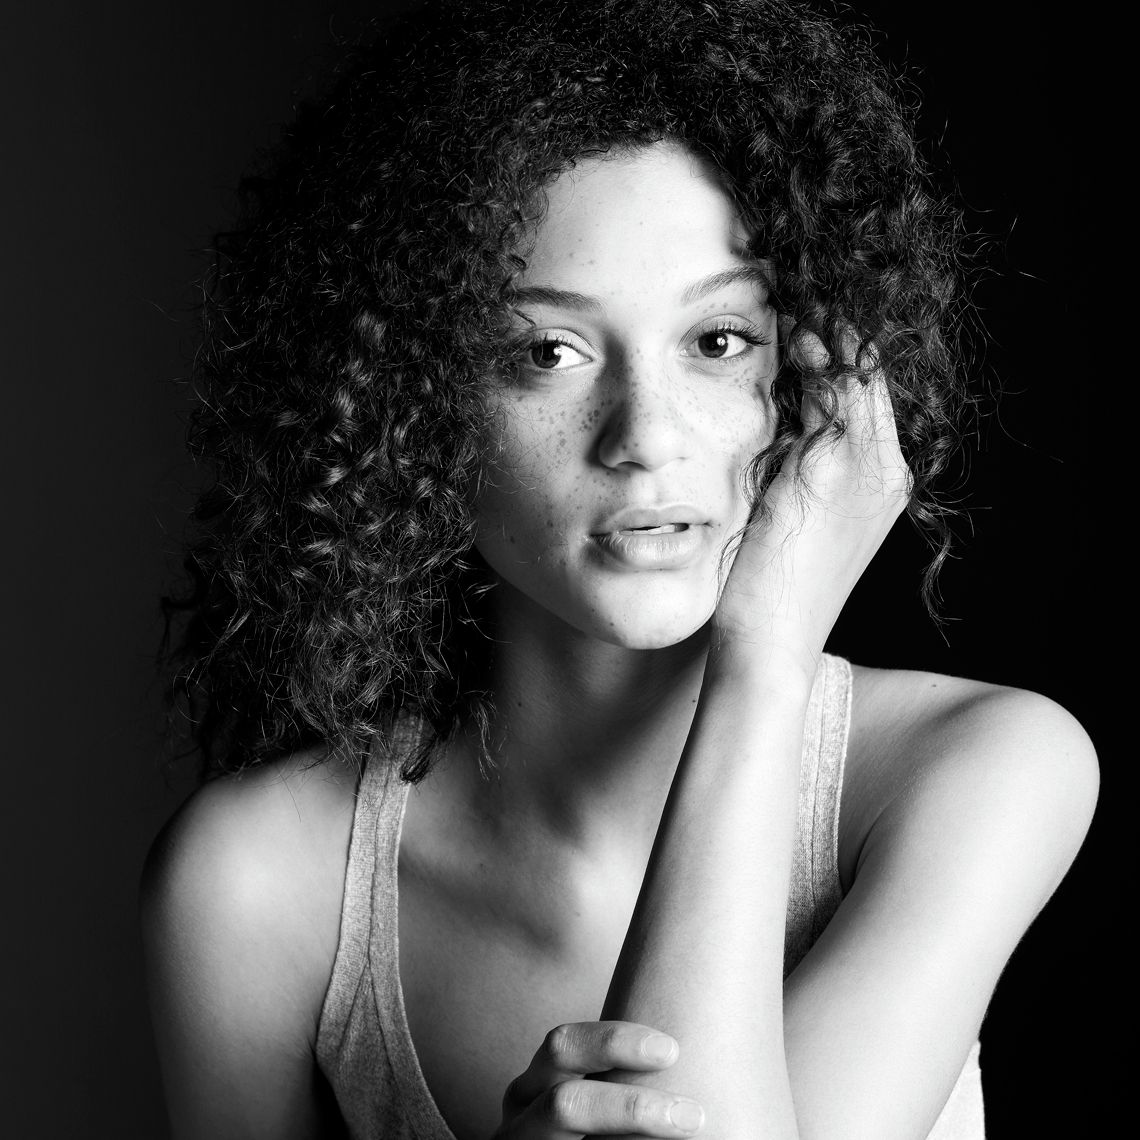 Connected black and white portrait of a mixed race woman with curly hair